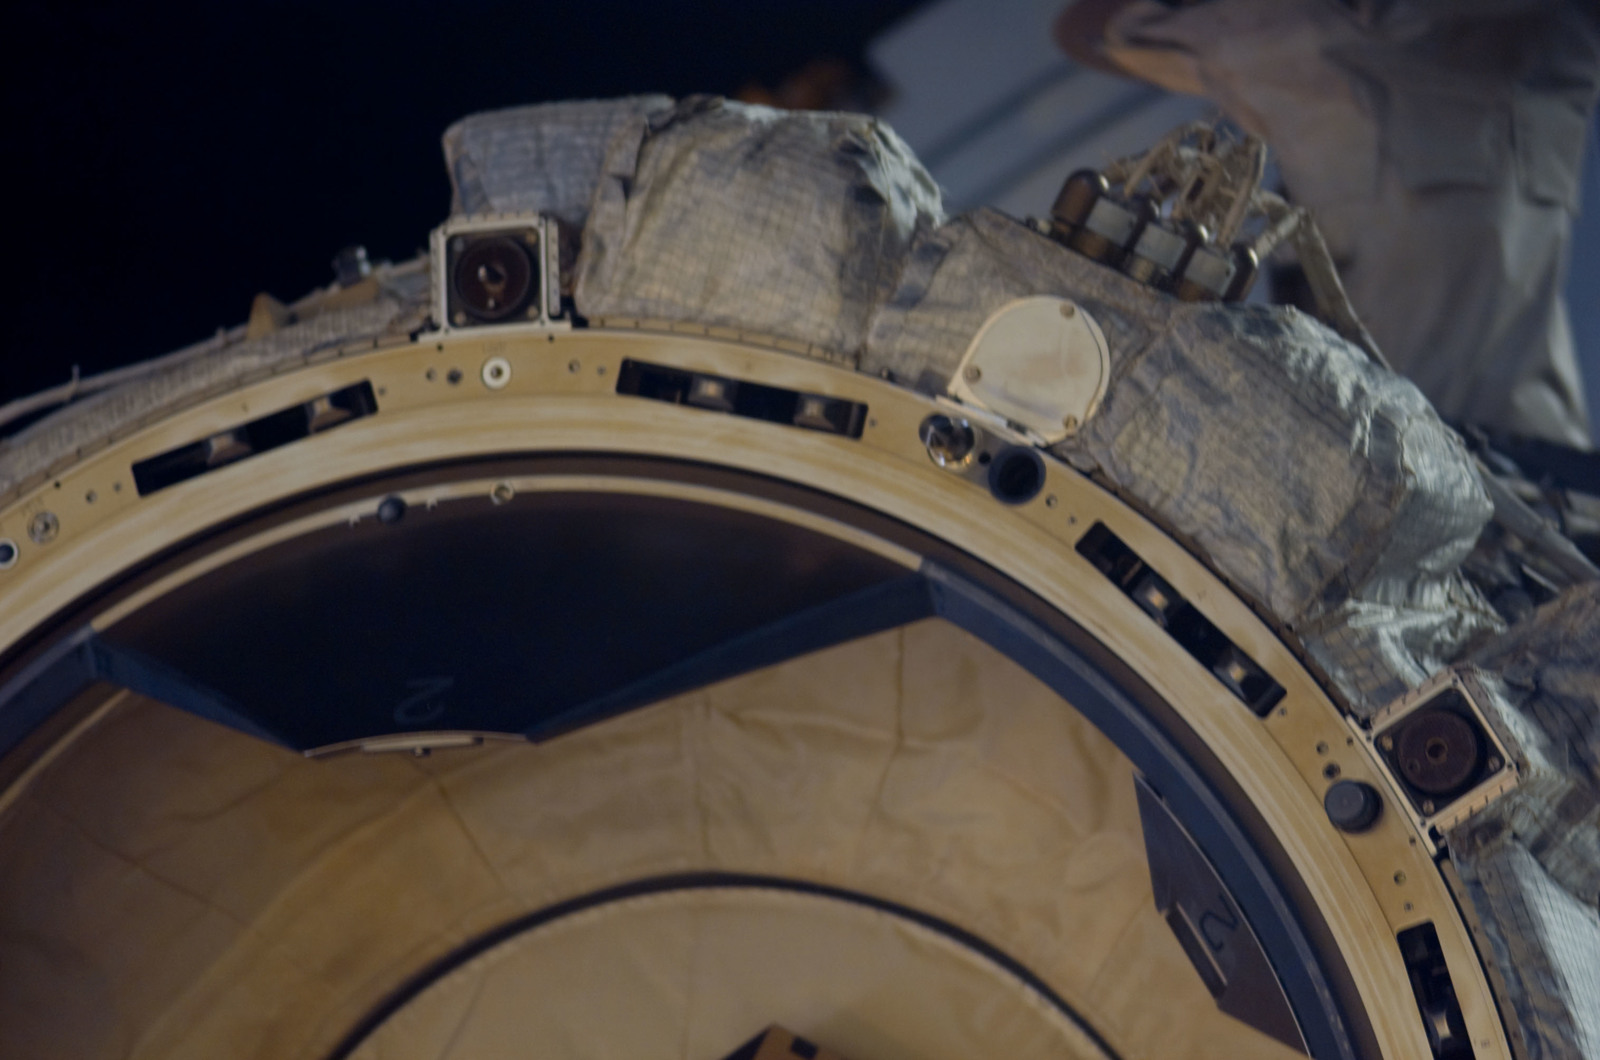 S116E07490 - STS-116 - View of the PMA 2 taken after departure of STS-116 Space Shuttle Discovery